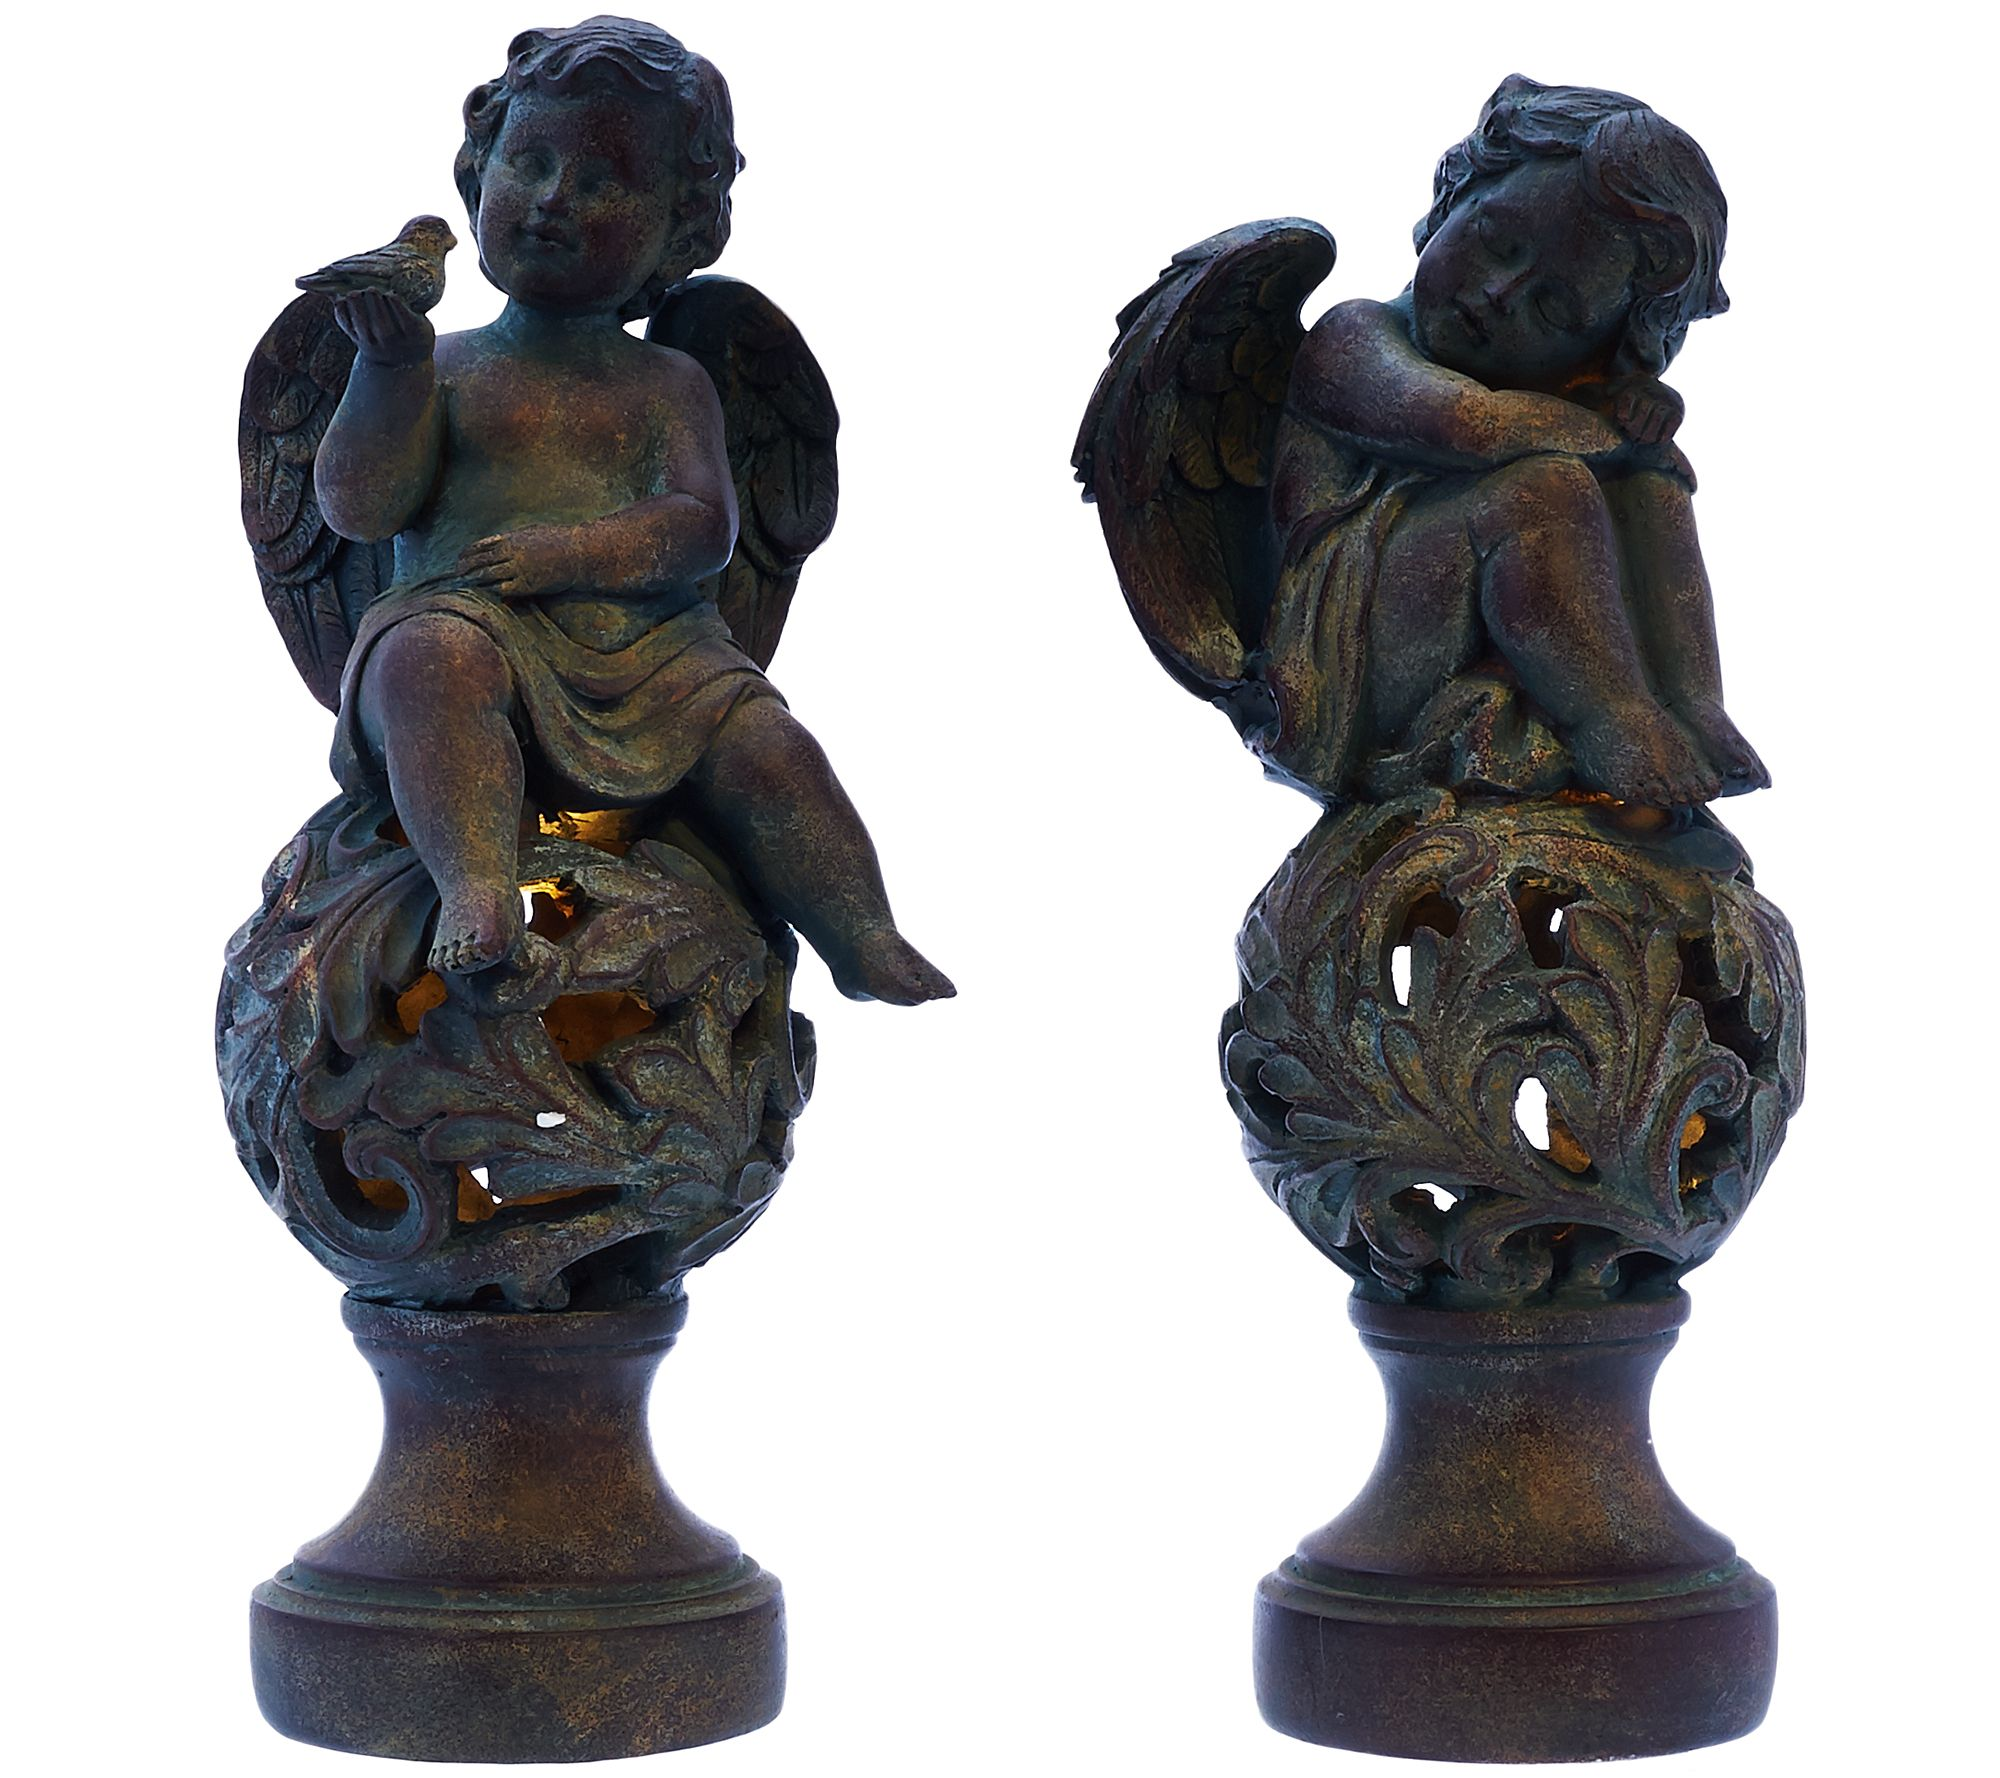 Set of 2 Cherubs on Illuminated Spheres by Valerie